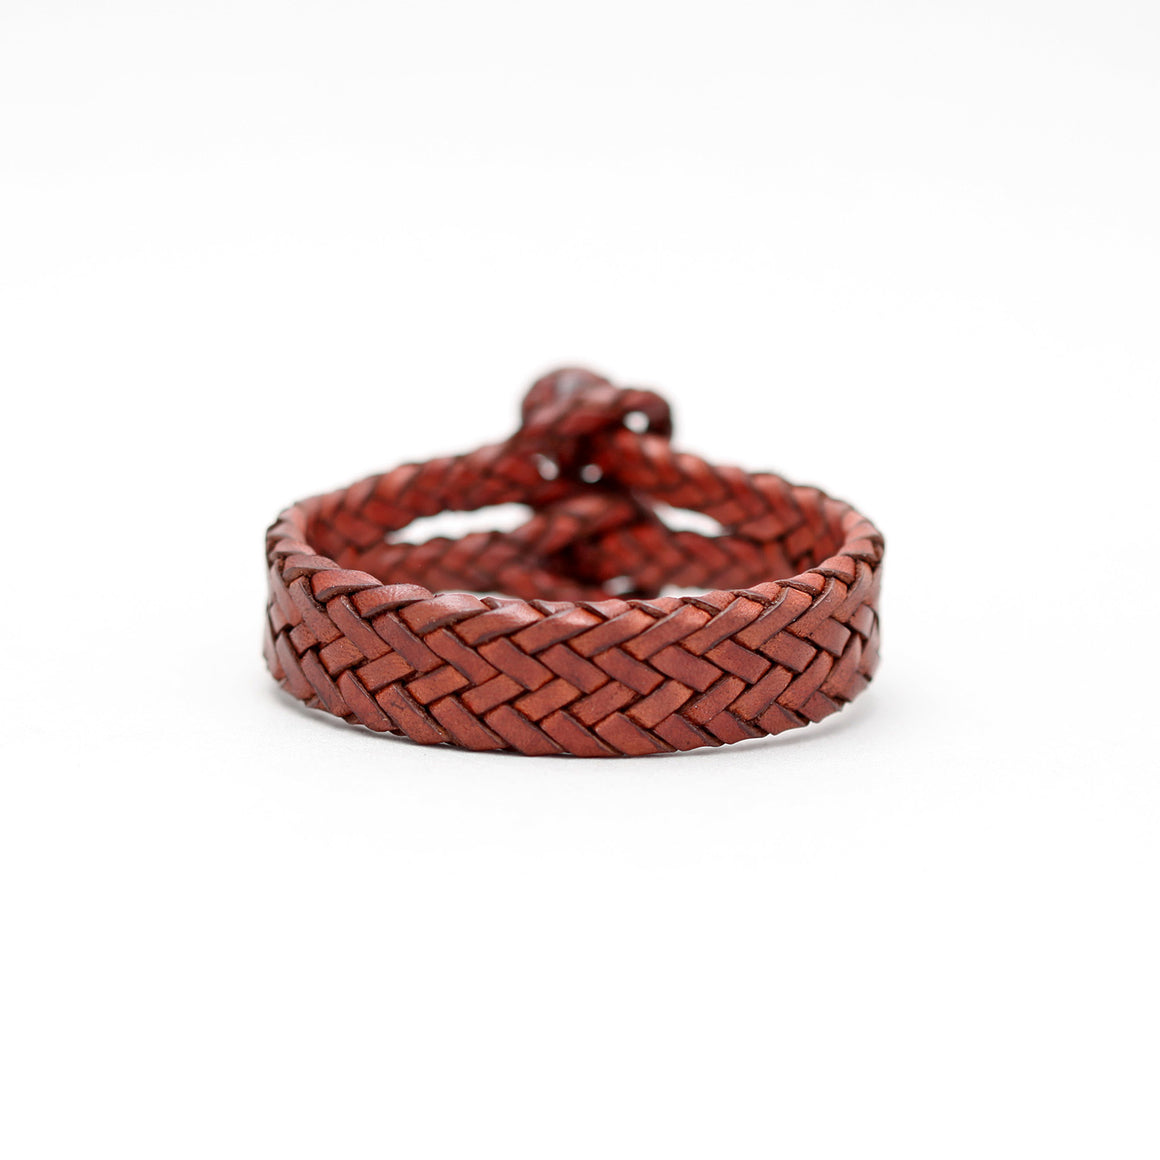 DOUBLE CLOSURE BRAIDED LEATHER BRACELET IN DARK BROWN